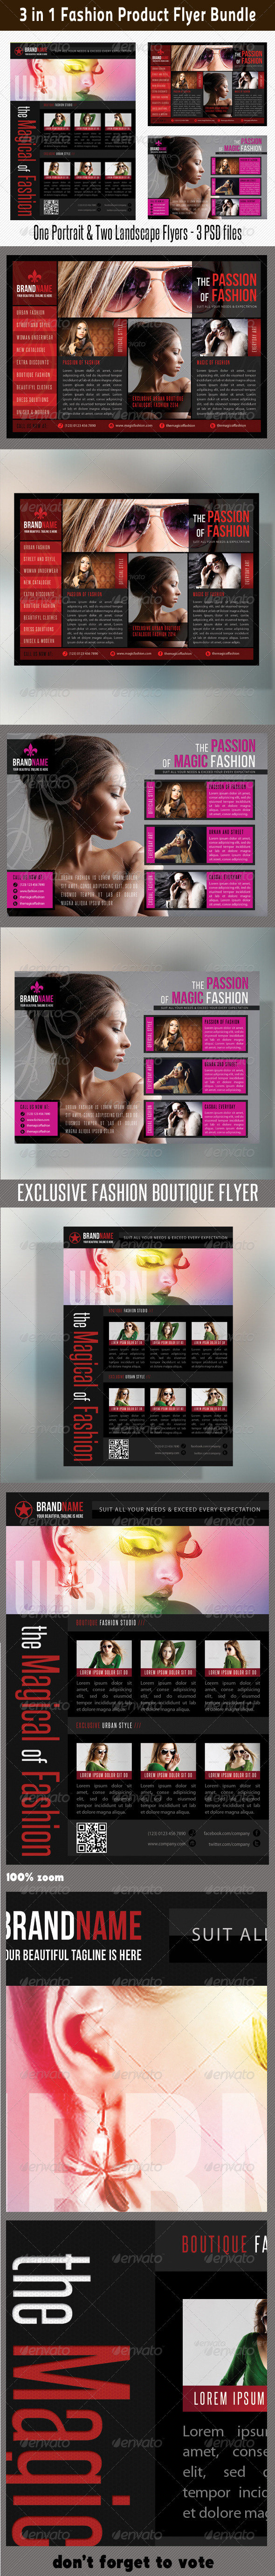 3 in 1 Fashion Product Flyer Bundle 10 - Commerce Flyers